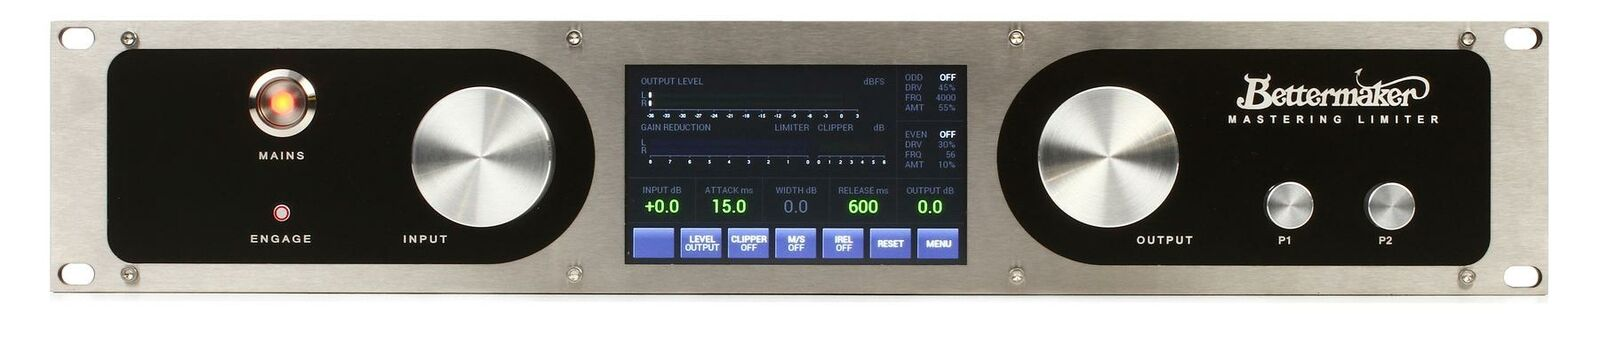 Bettermaker Mastering Limiter (MastLimitd1). Buy it now for 2609.10